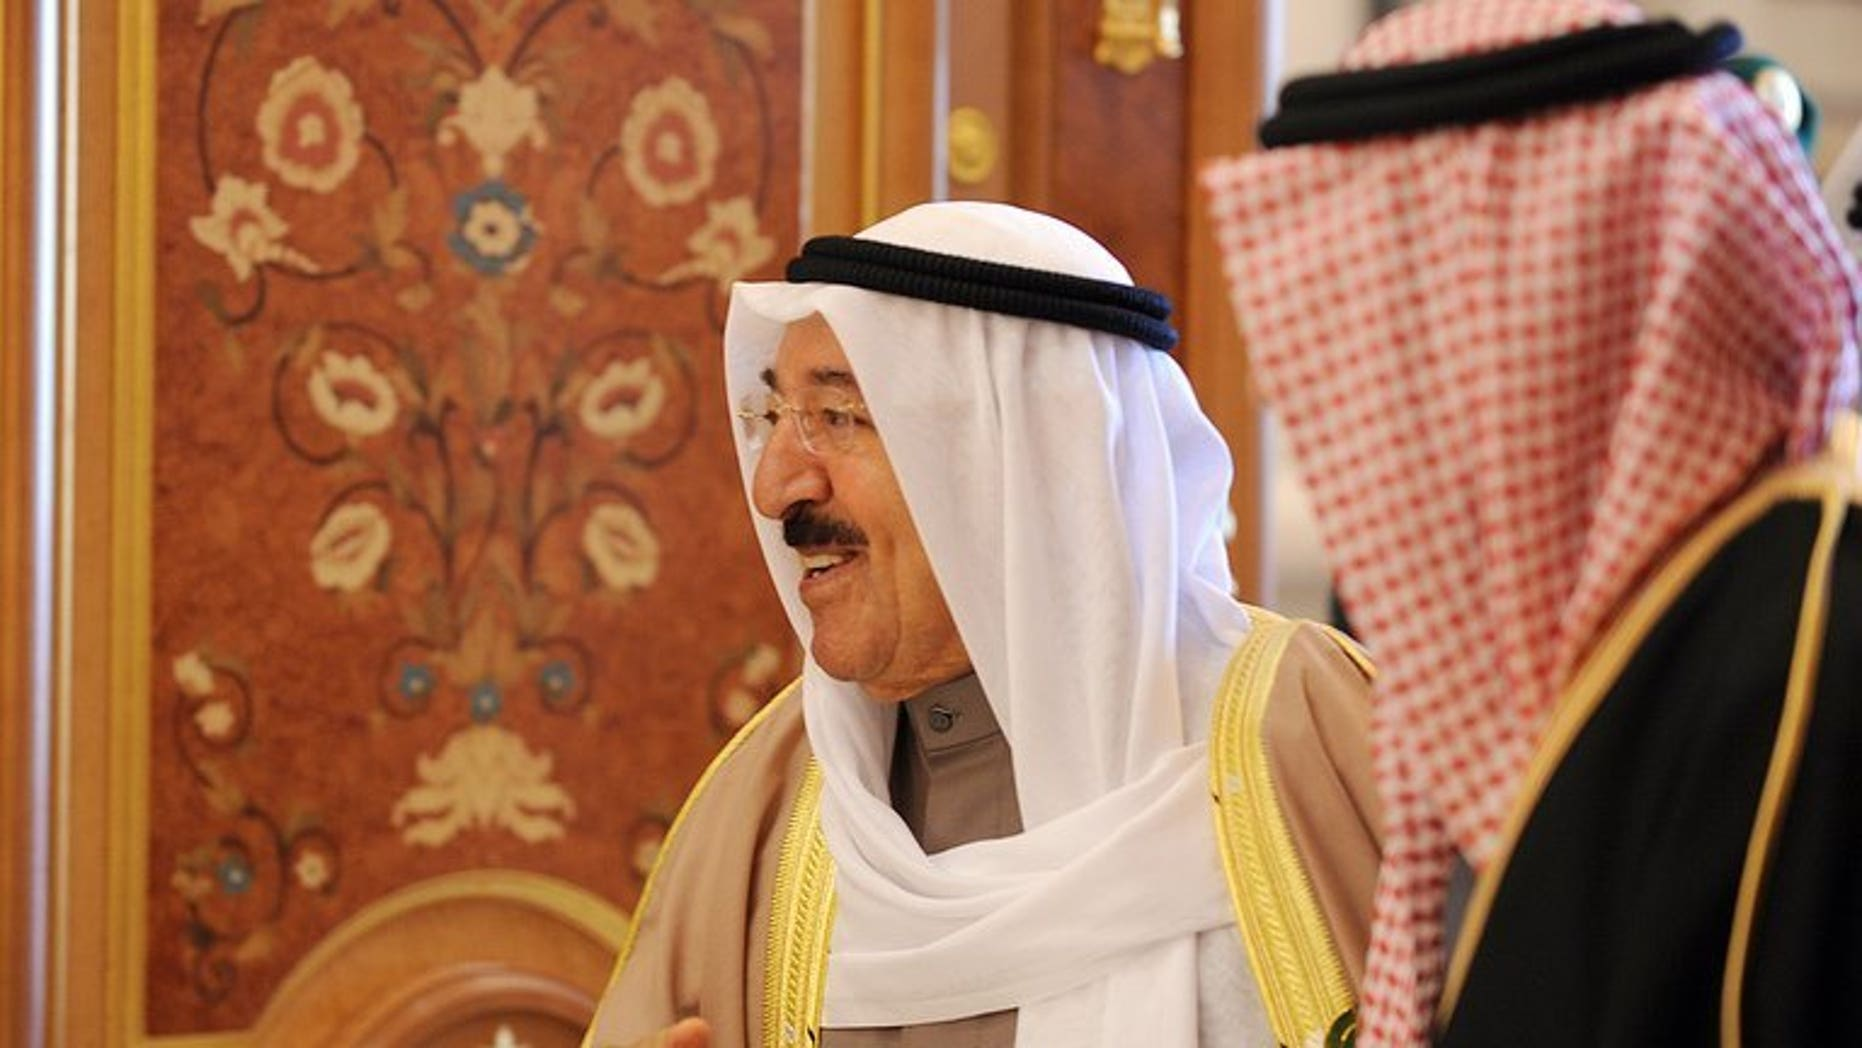 The Emir of Kuwait Sheikh Sabah Al-Ahmad Al-Jaber Al-Sabah at a summit on January 22, 2013 in Riyadh. He pardoned on Tuesday all those who have been sentenced to jail for insulting him.